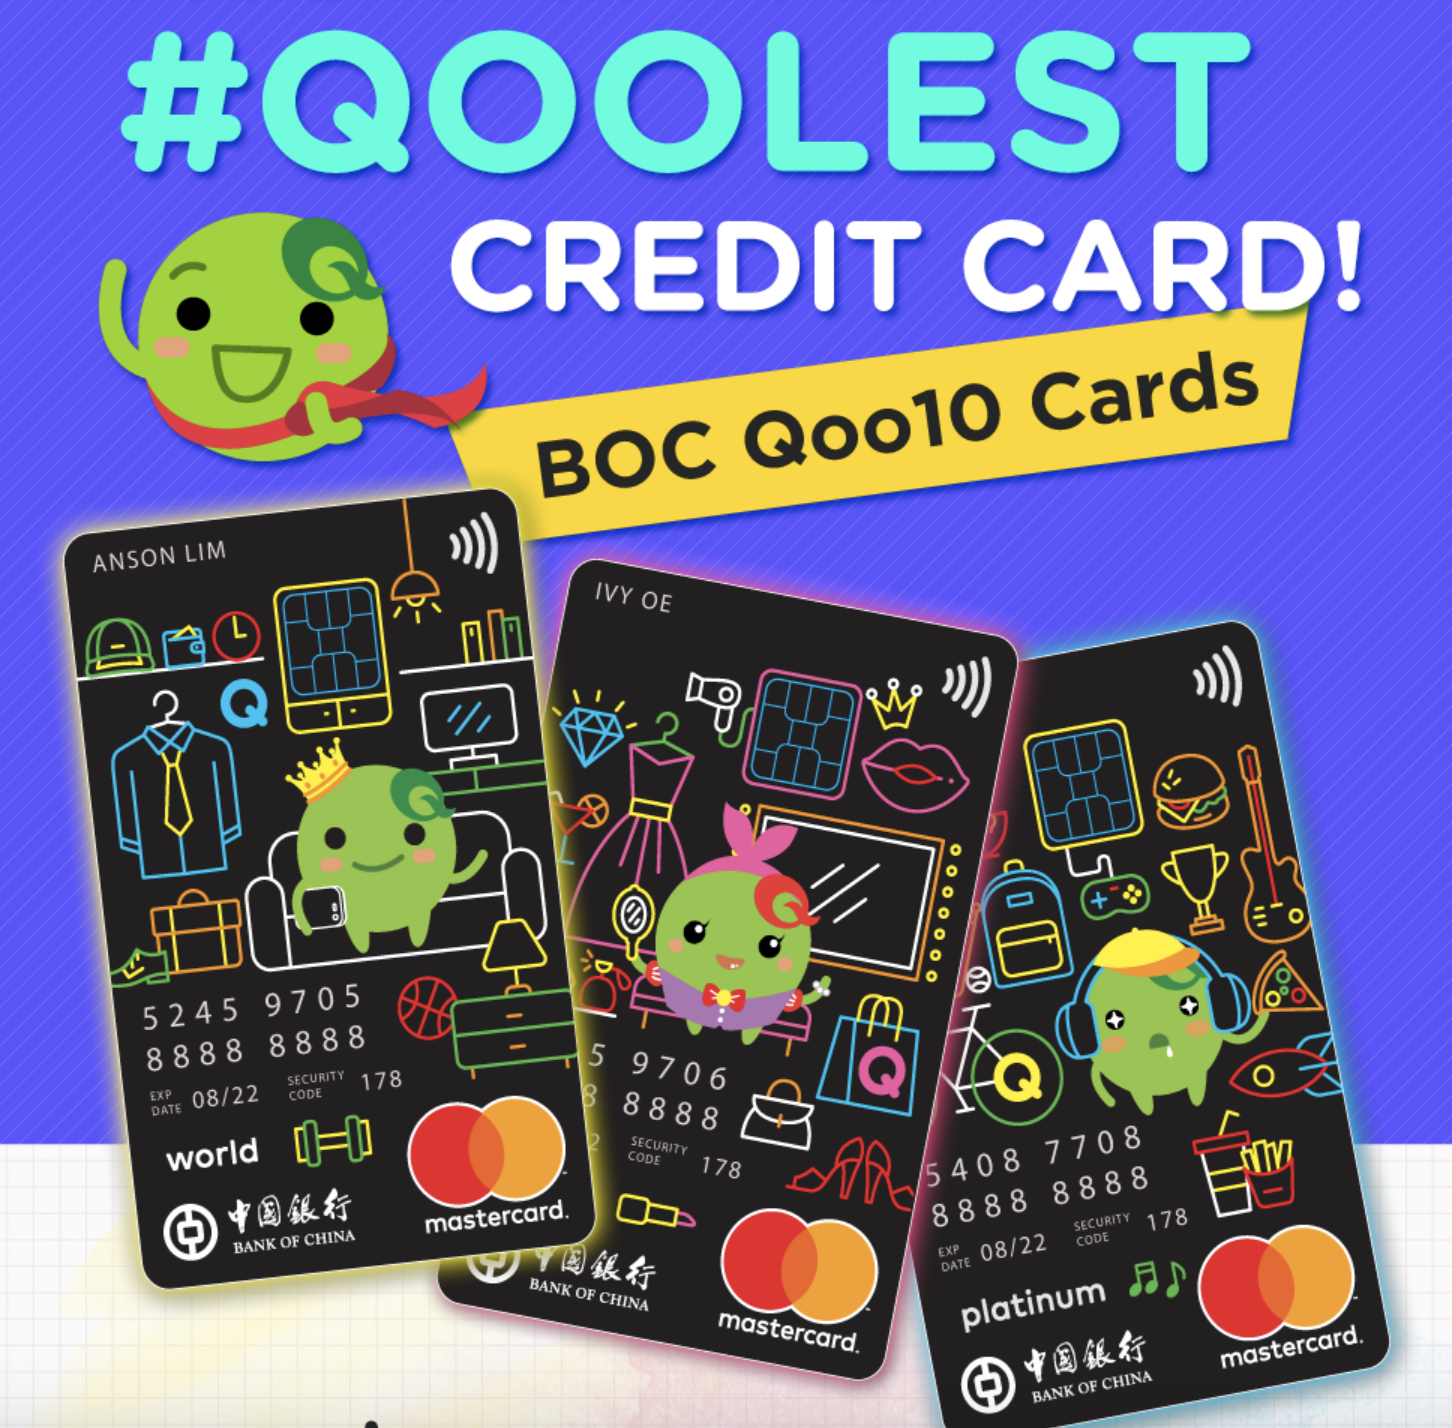 Qoo10 Promo Codes for BOC